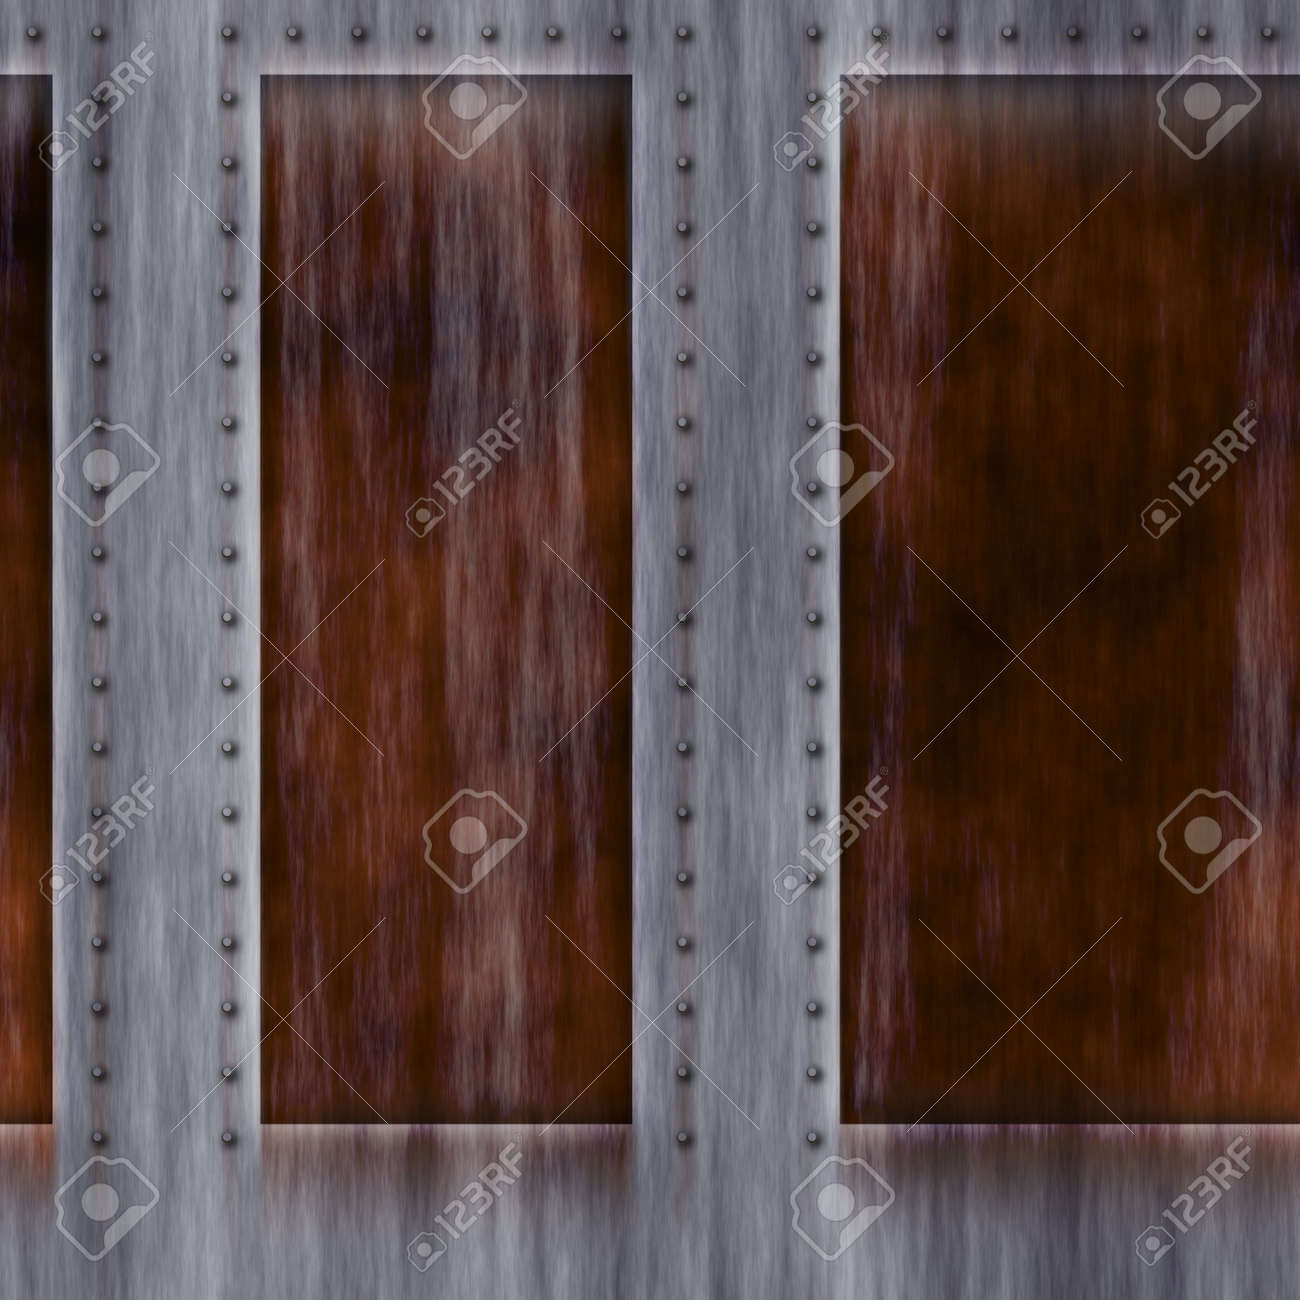 Abstract weathered metallic texture. Rust and rivets. Stock Photo - 5794566